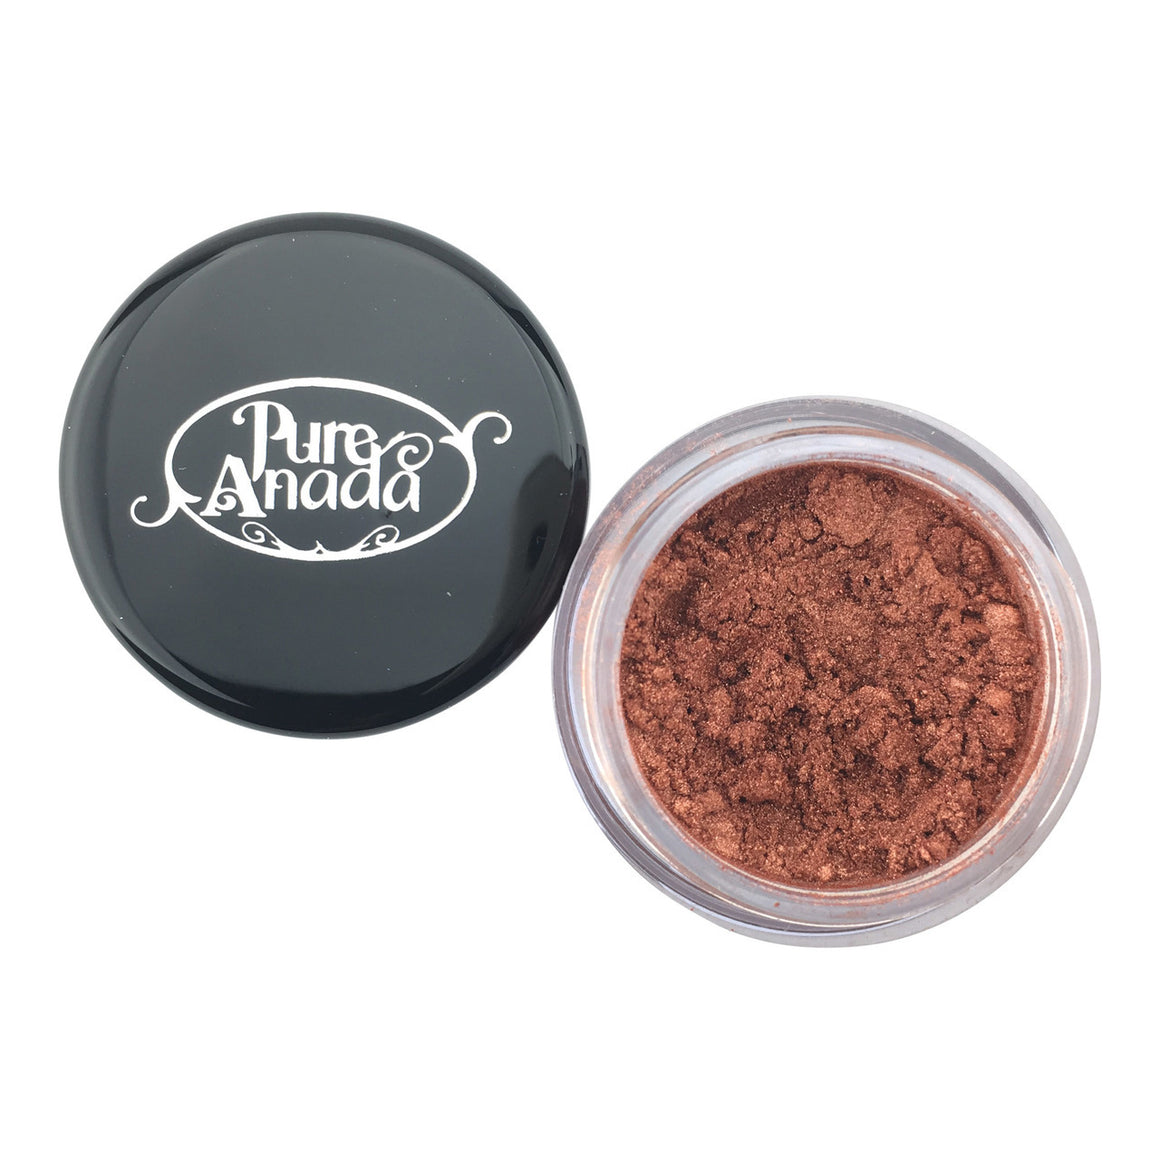 Copper - Luminous Eye Loose Shadow 1g-PureAnada-Live in the Light